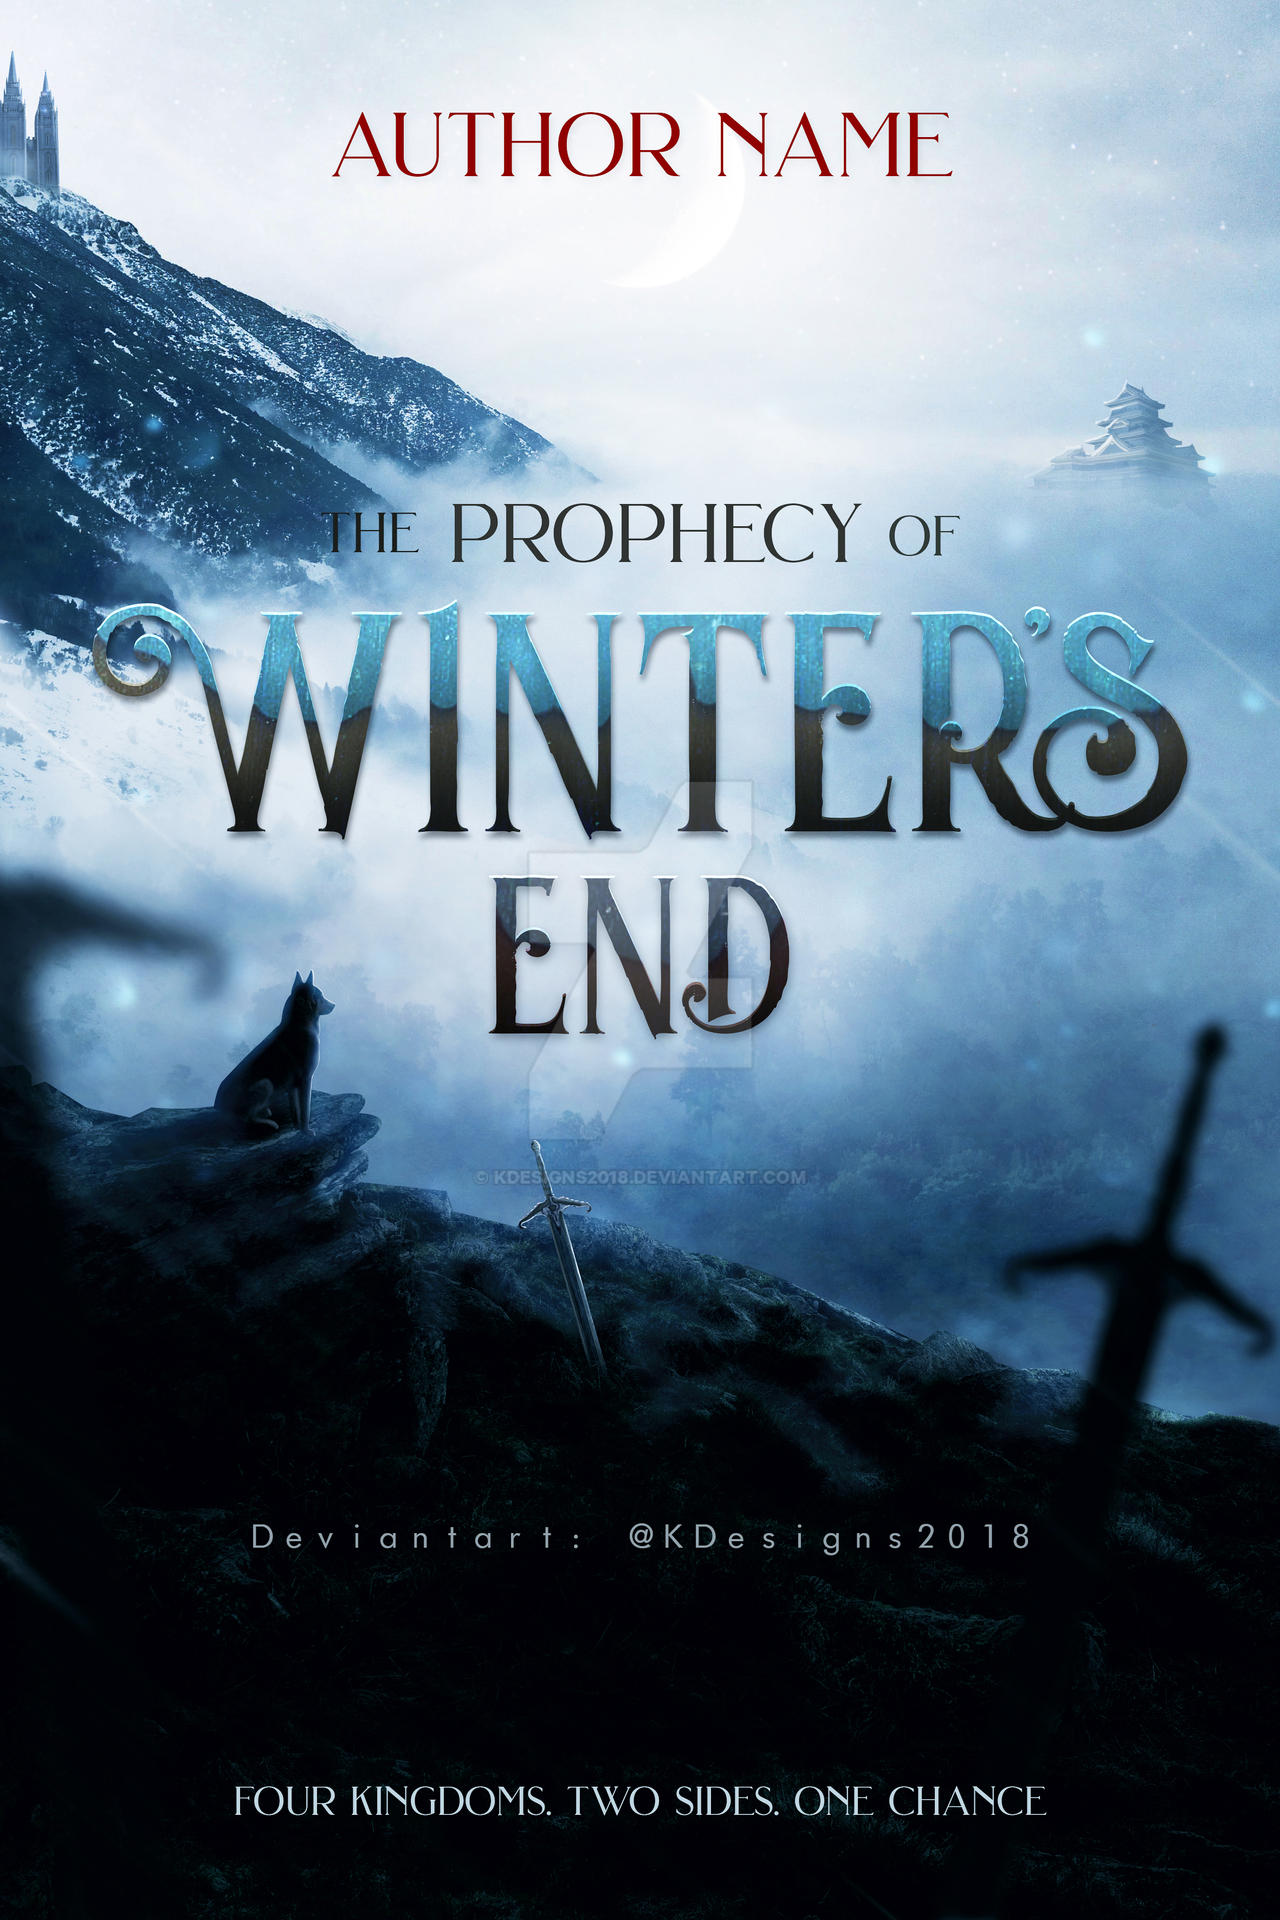 The Prophecy of Winter's End